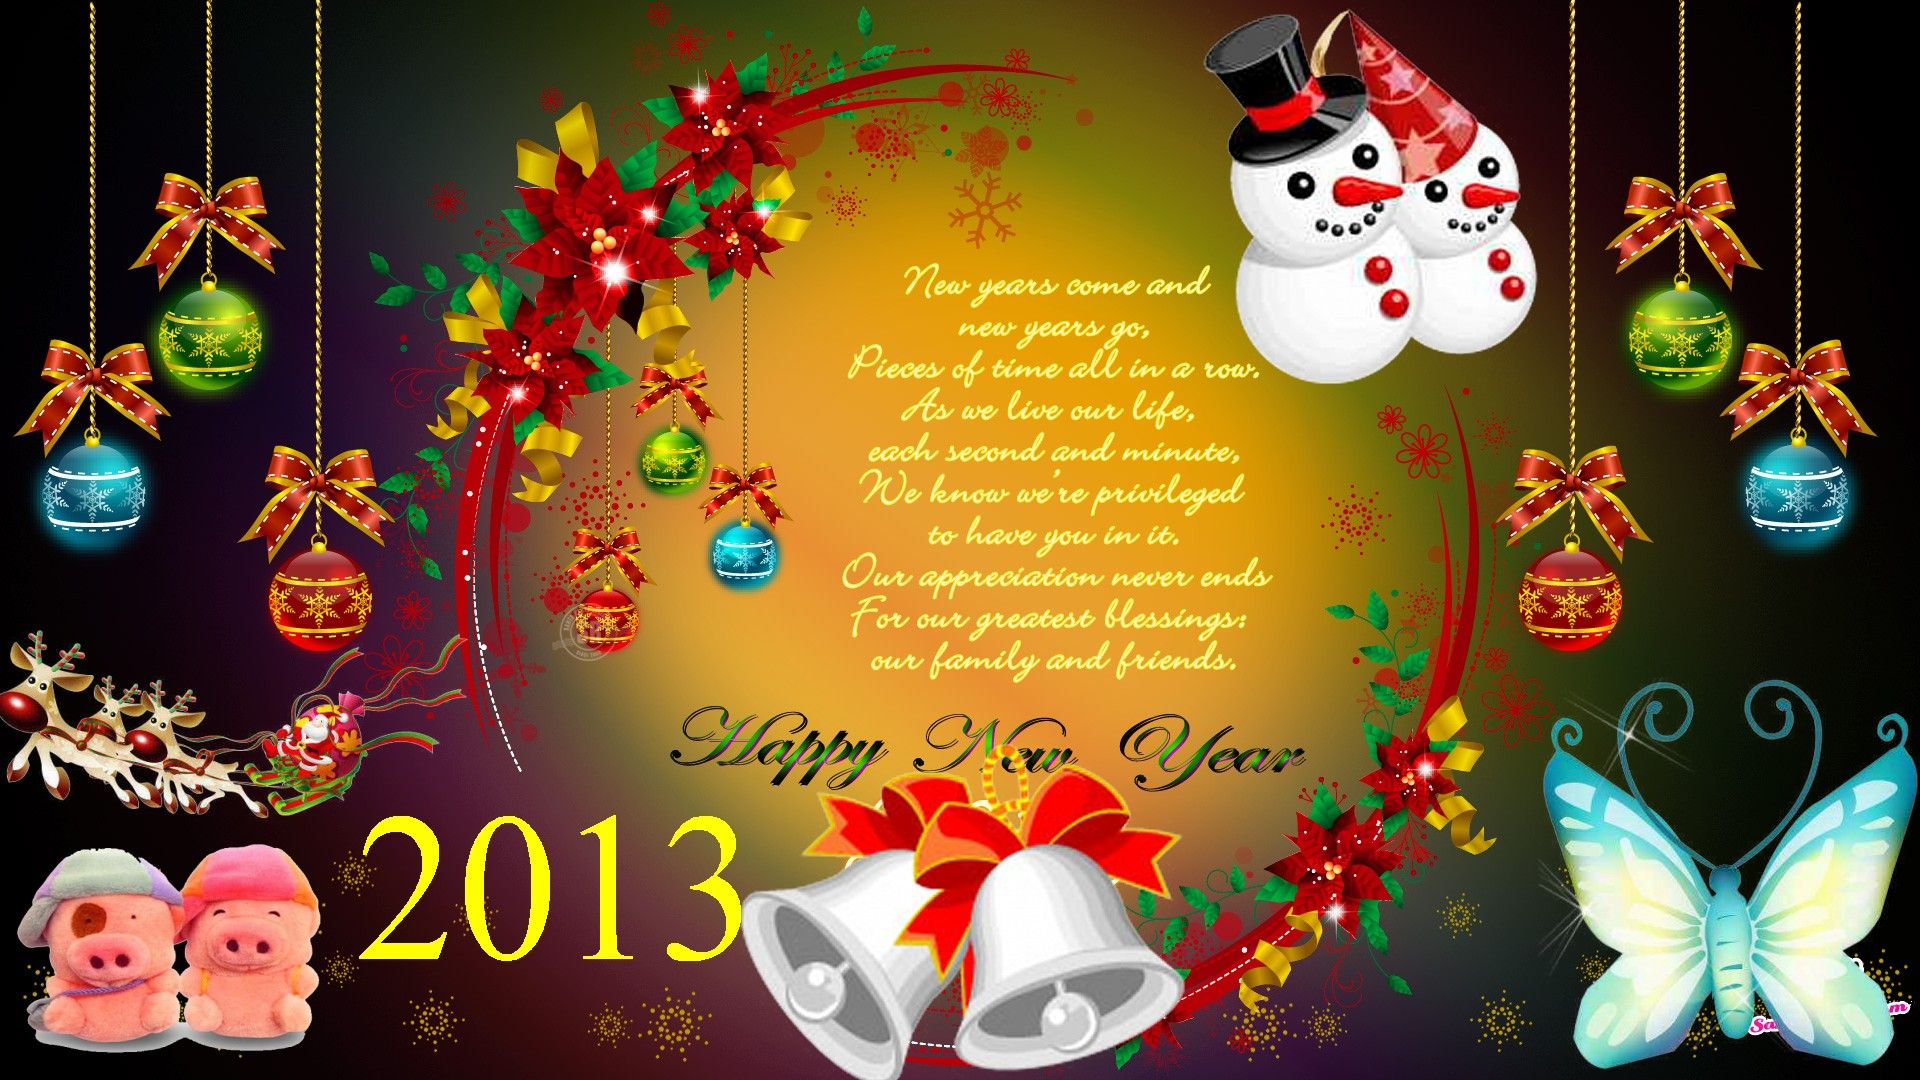 Christmas Gifts And Celebrations Happy New Year 2013